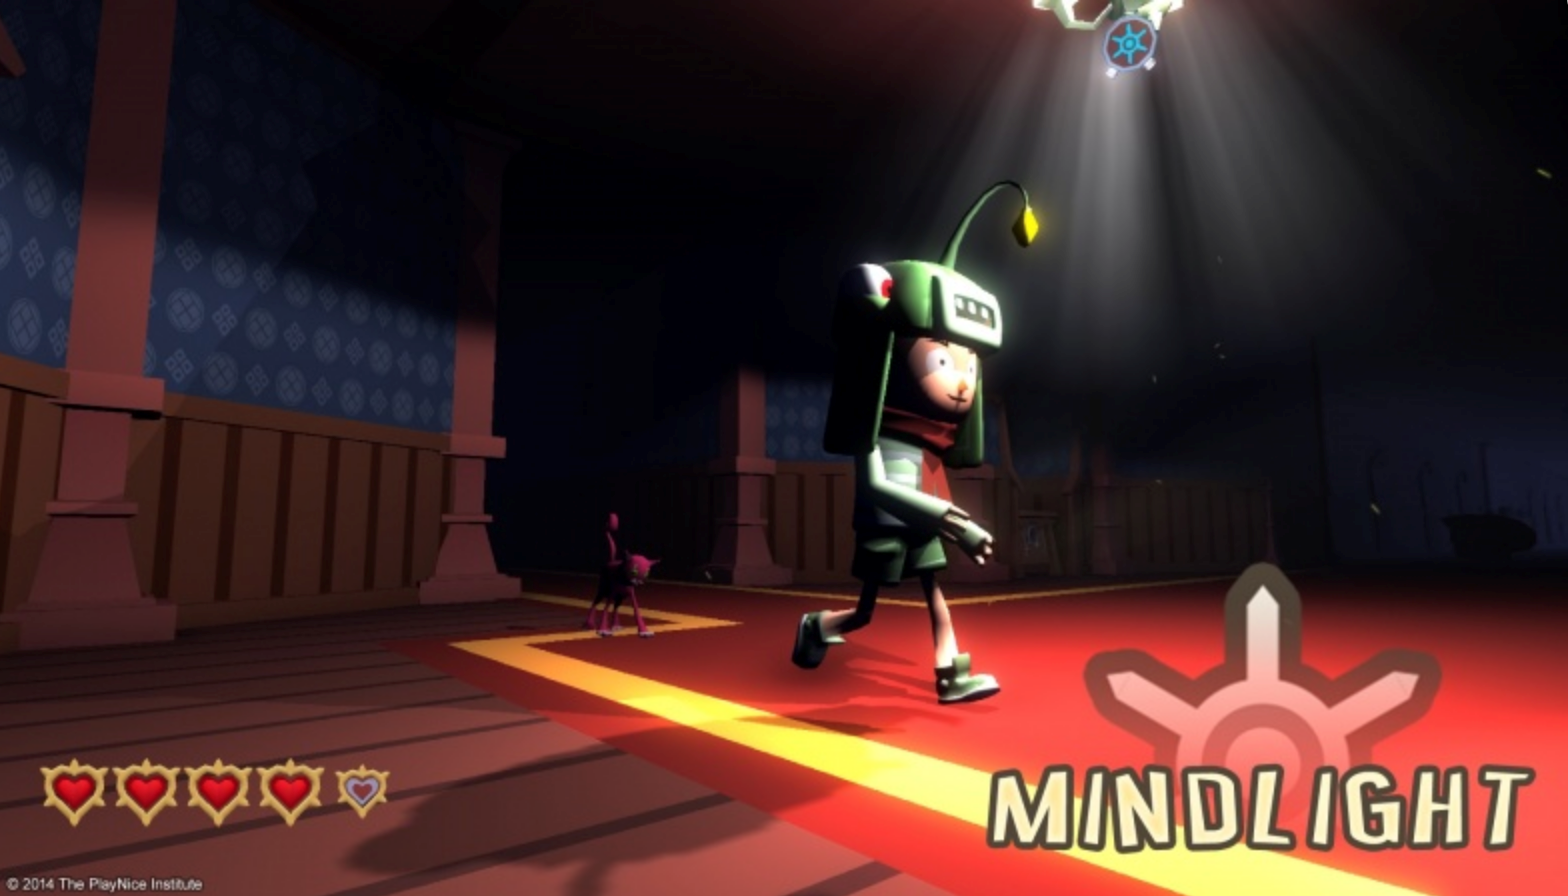 "An image from the videogame ""Mindlight."" In this image, a cartoon child is walking with a helmet on that has a light. The light is illuminating the walking path of the child."